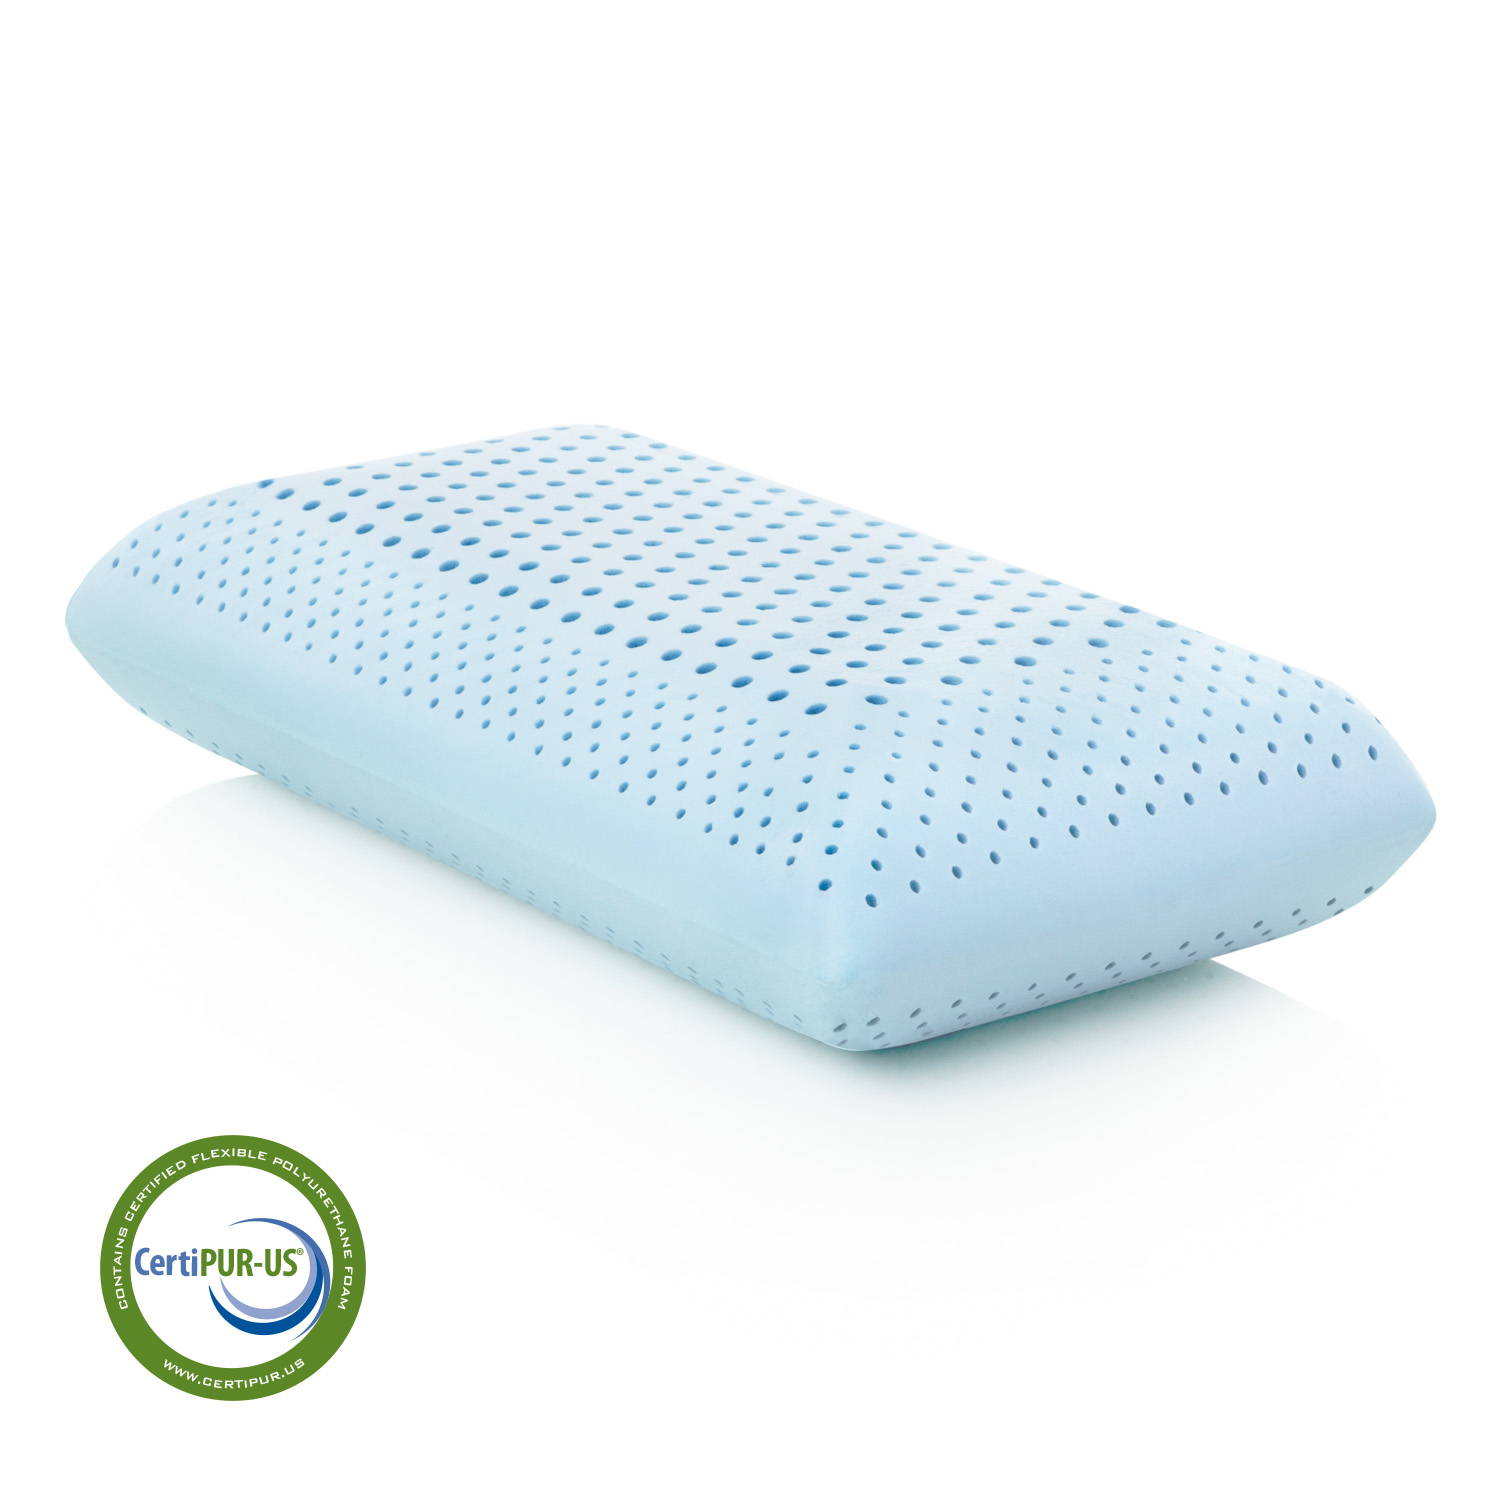 Luft memory foam pillow